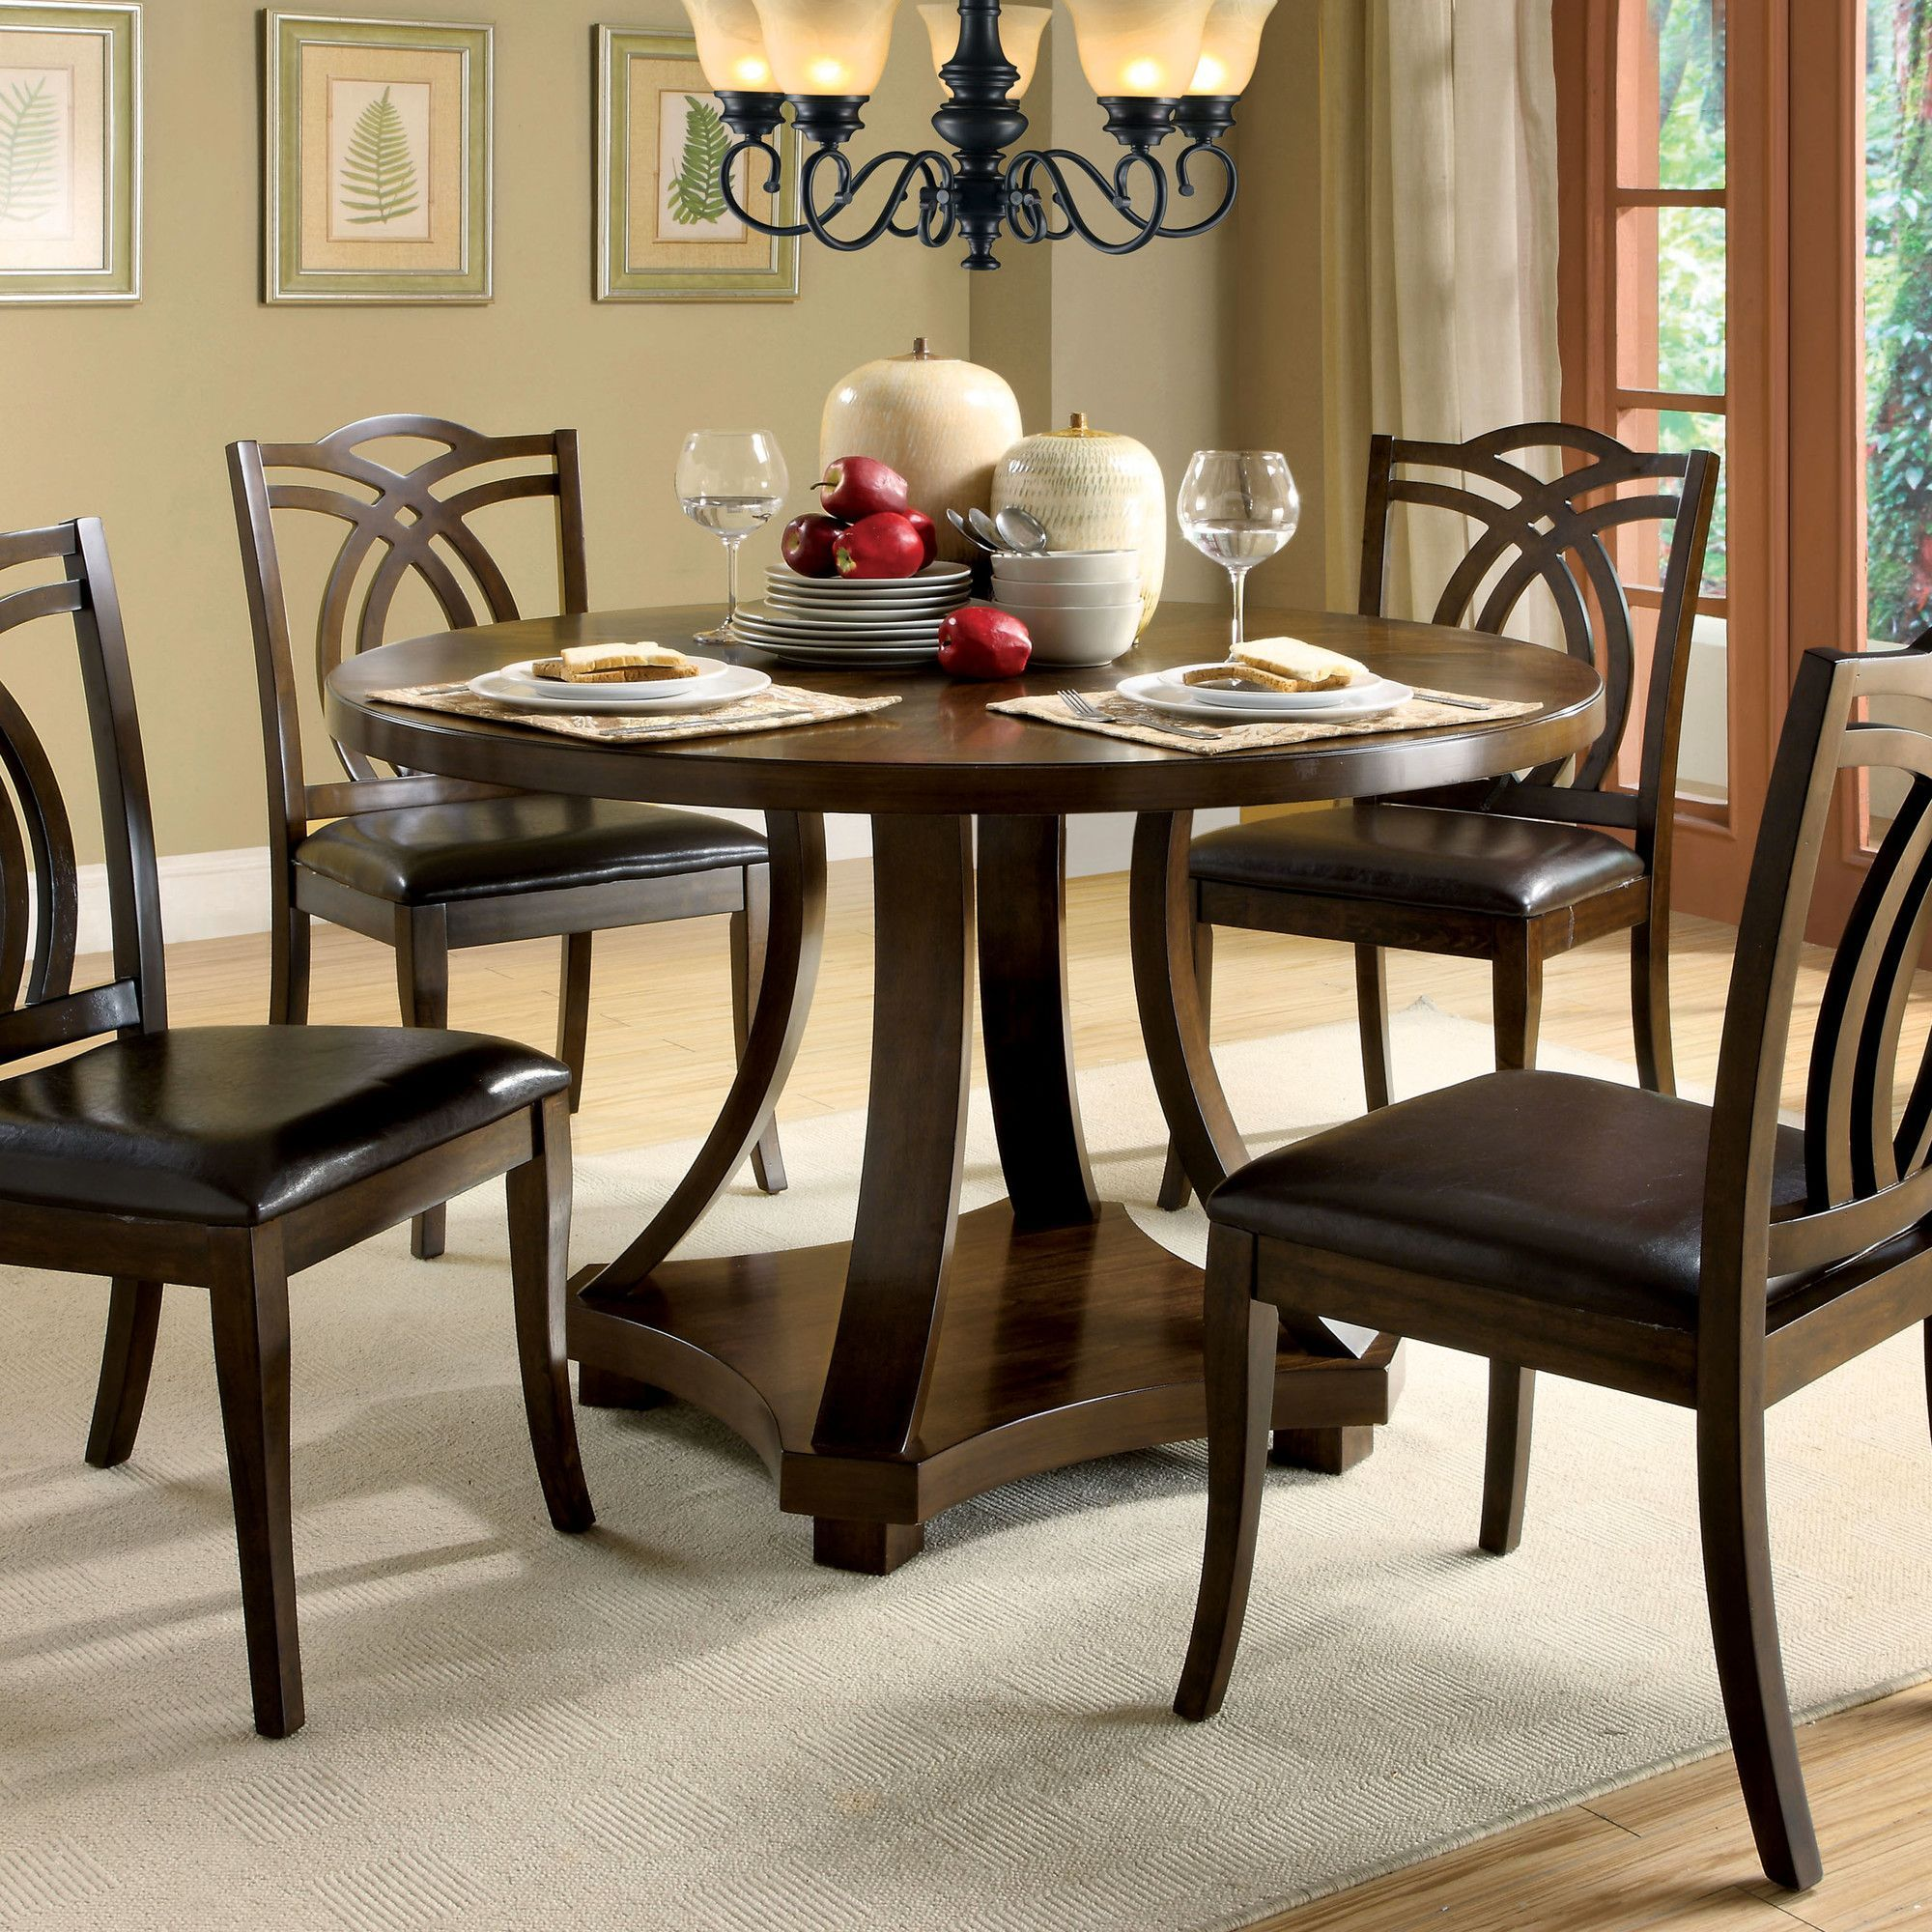 Baldwin dining table products pinterest products